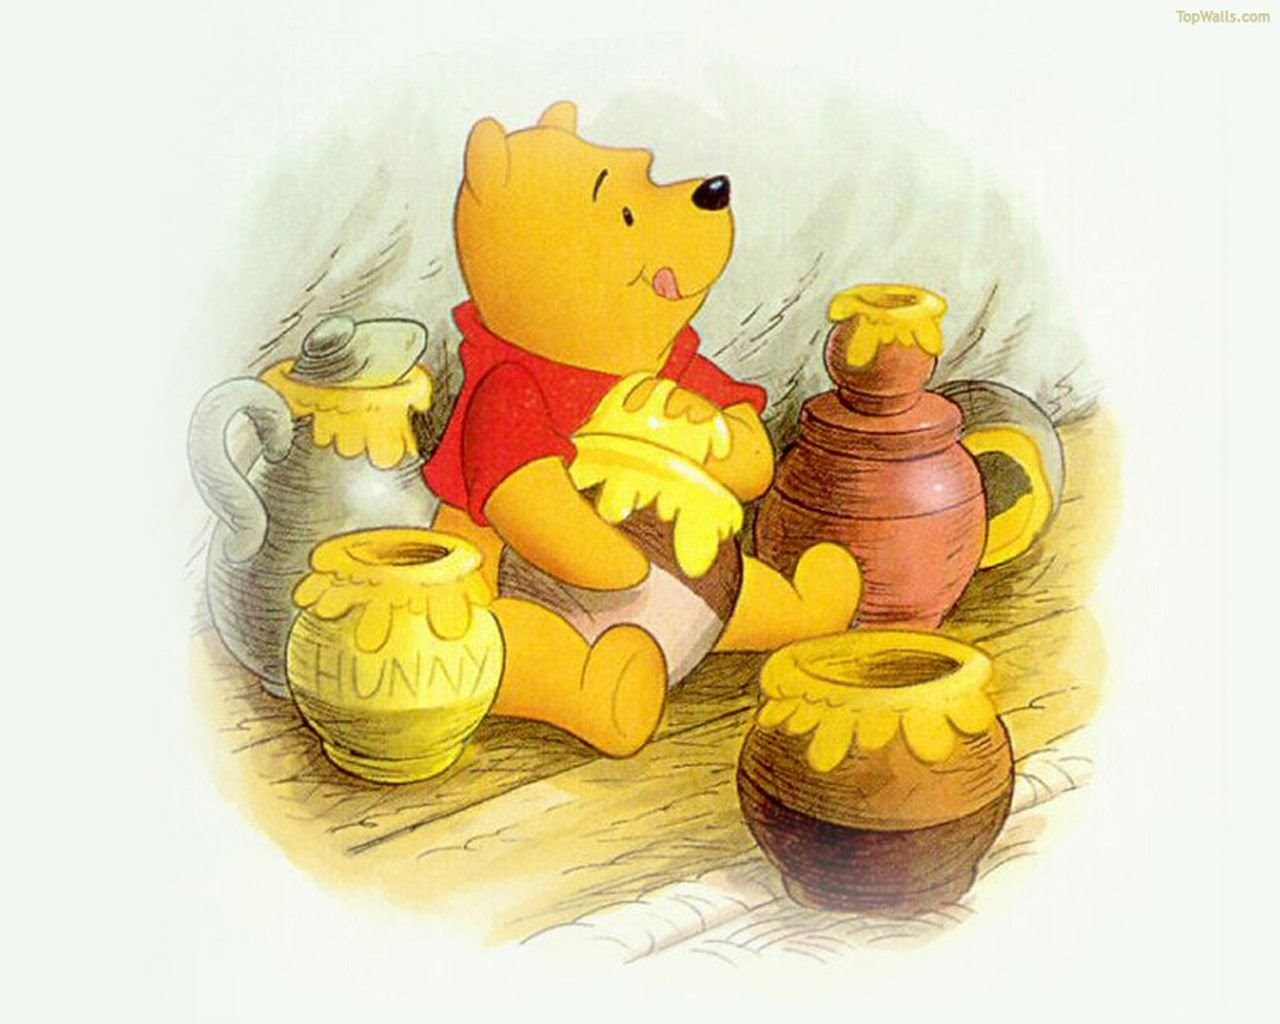 Beautiful Wallpaper Halloween Winnie The Pooh - 459488_winnie-the-pooh-full-hd-wallpapers-image-for-tablet-cartoons_1280x1024_h  2018_553770.jpg